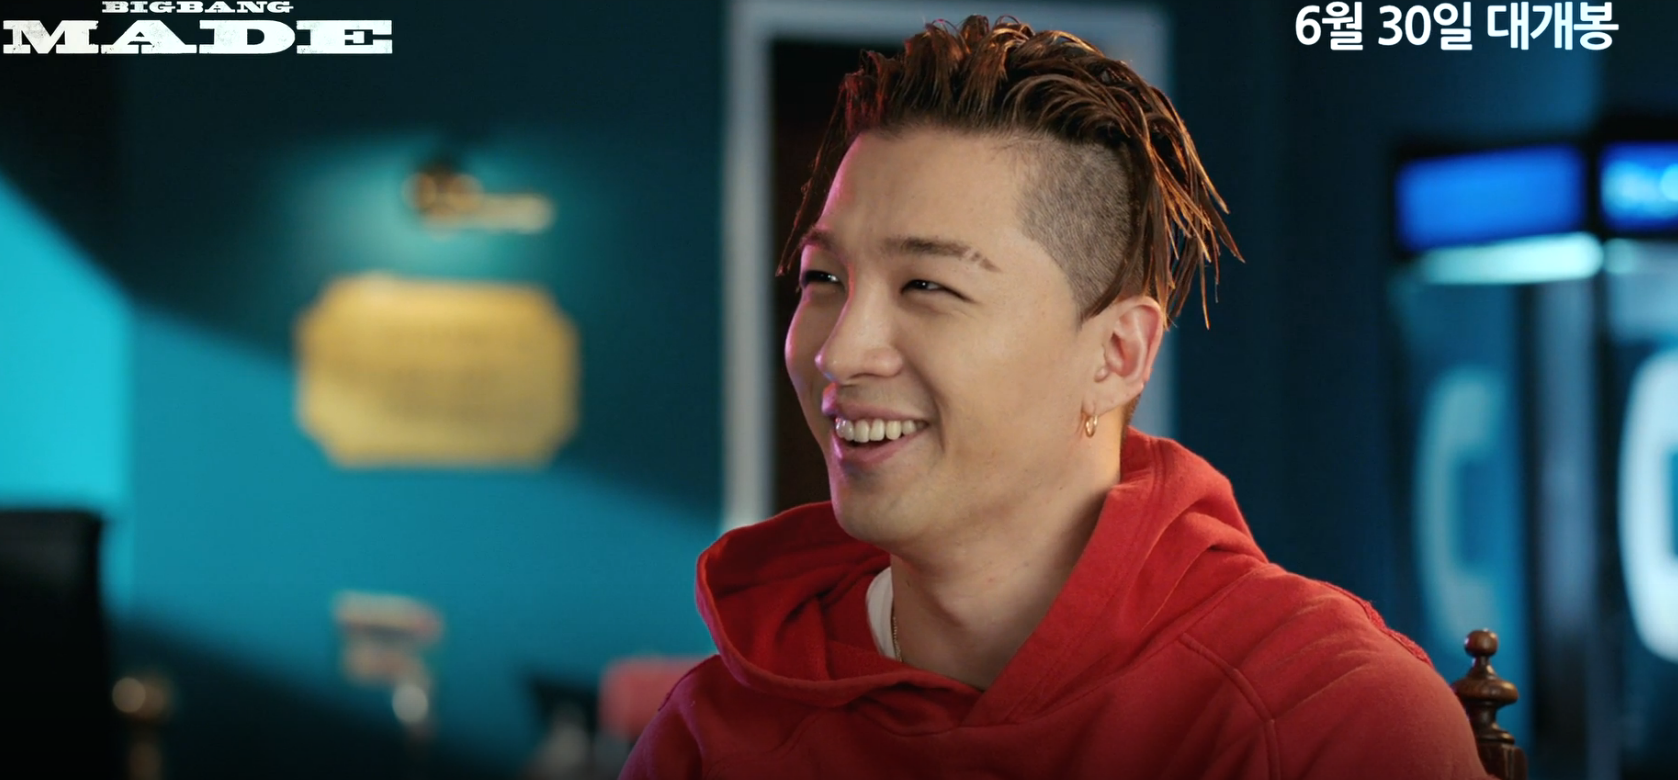 BIGBANG's Taeyang Tries To Keep A Secret On Camera, And It's Adorable